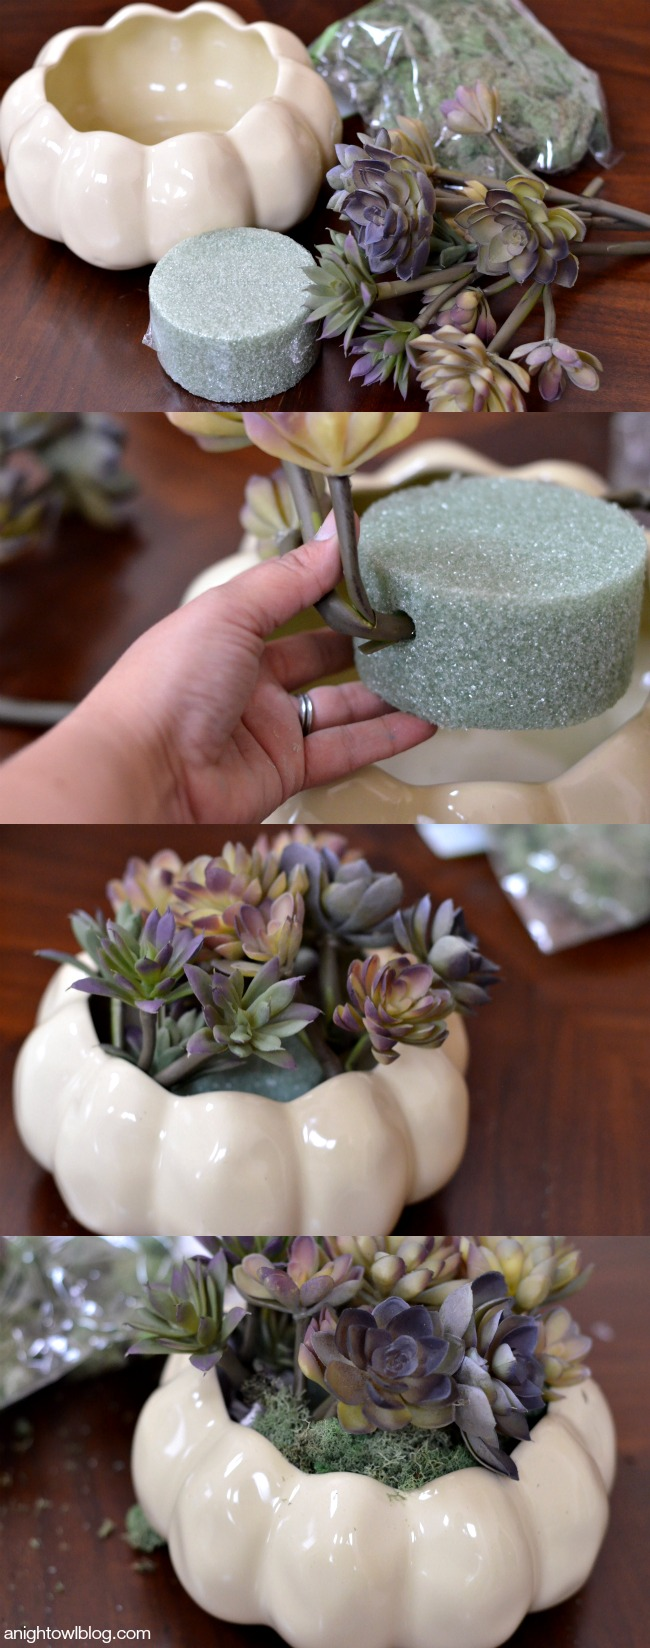 DIY Thanksgiving Succulent Centerpiece | anightowlblog.com